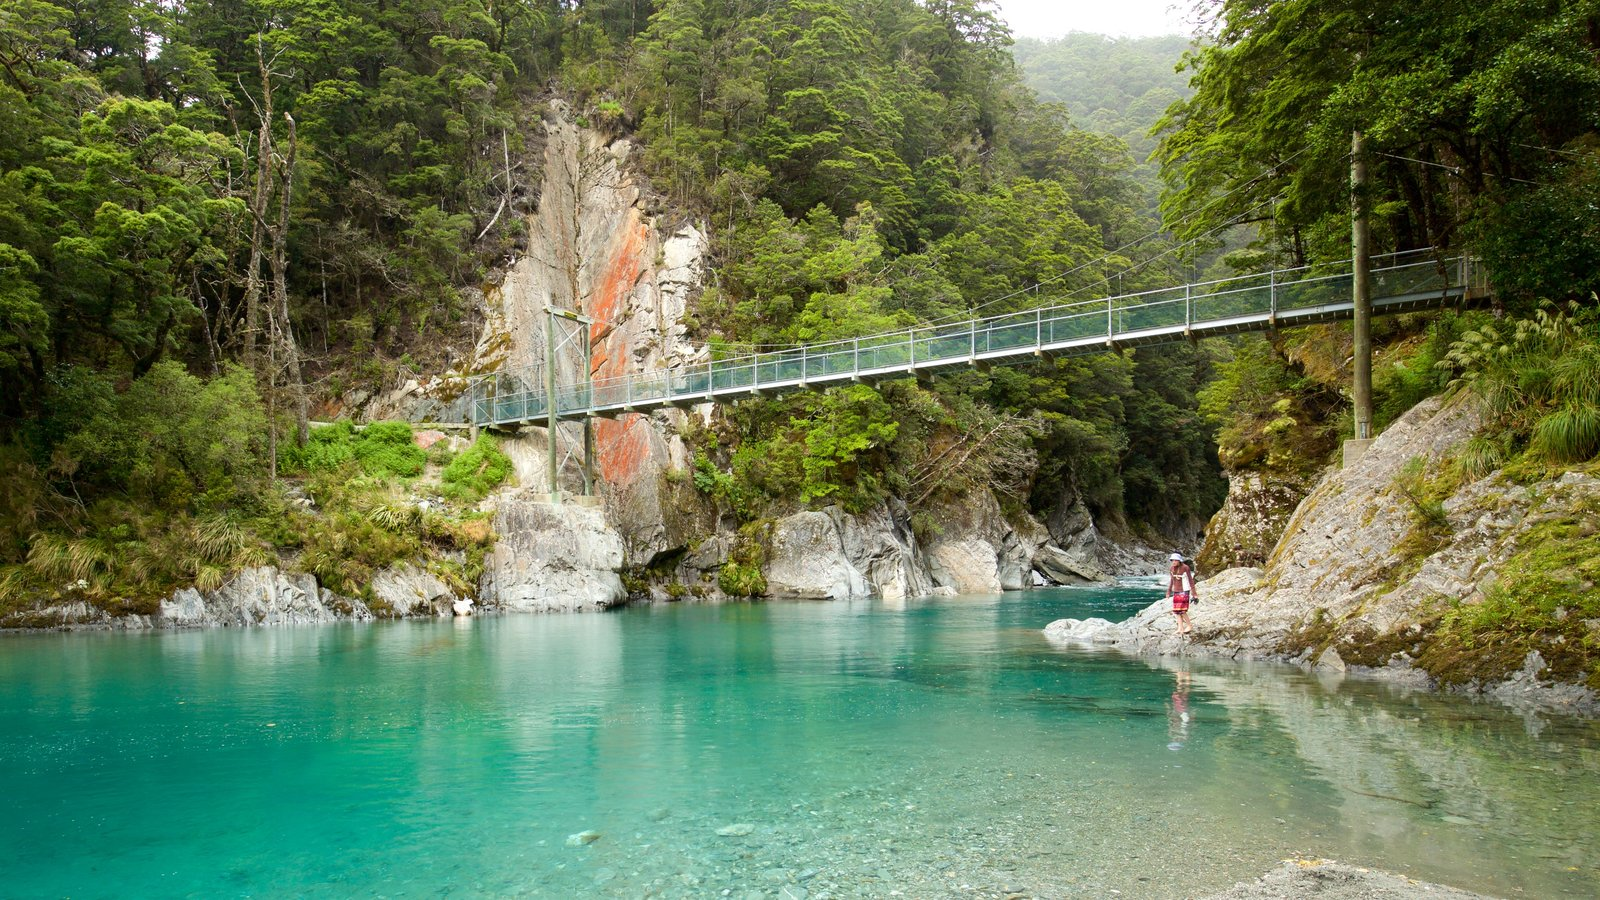 Wanaka which includes a bridge, forest scenes and a lake or waterhole